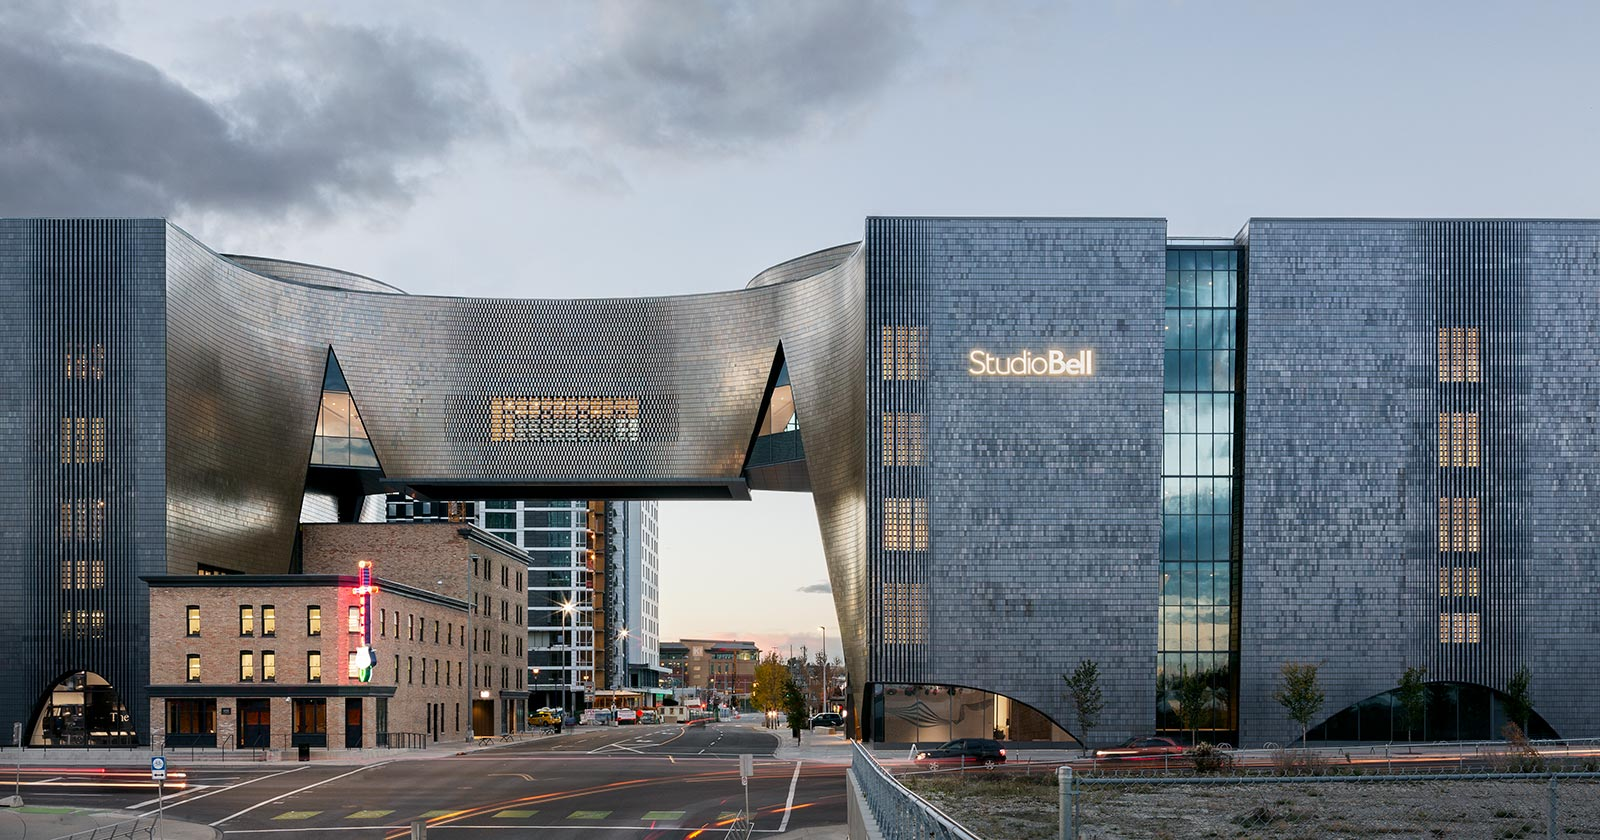 6. - Explore Studio Bell,home of the National Music Centre